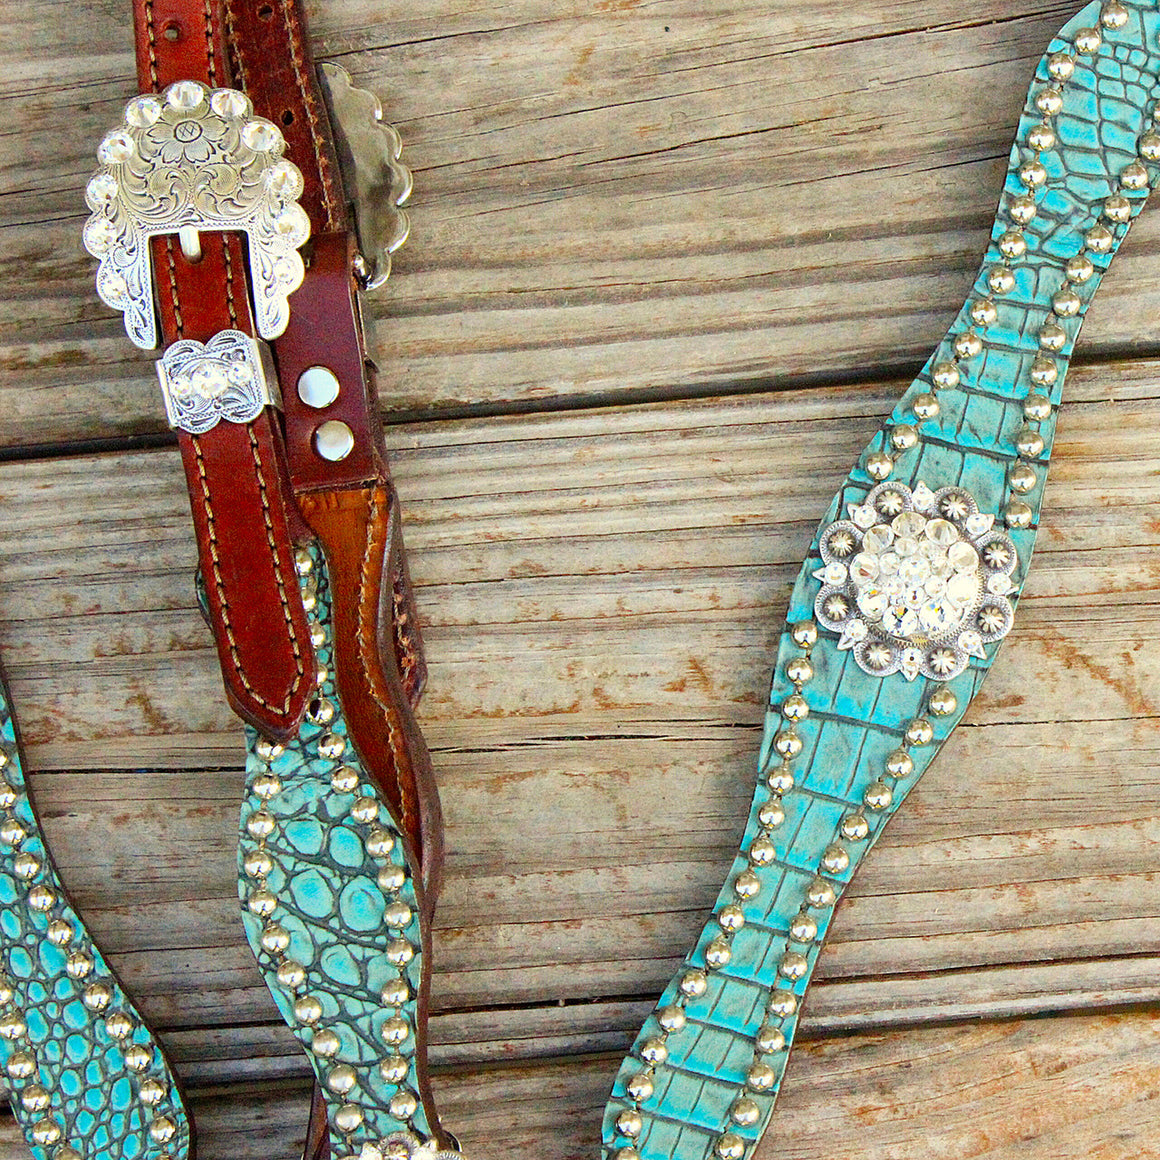 Antique Teal Gator/Chestnut Leather One Ear Tack Set w/Clear Crystal Rhinestone Conchos